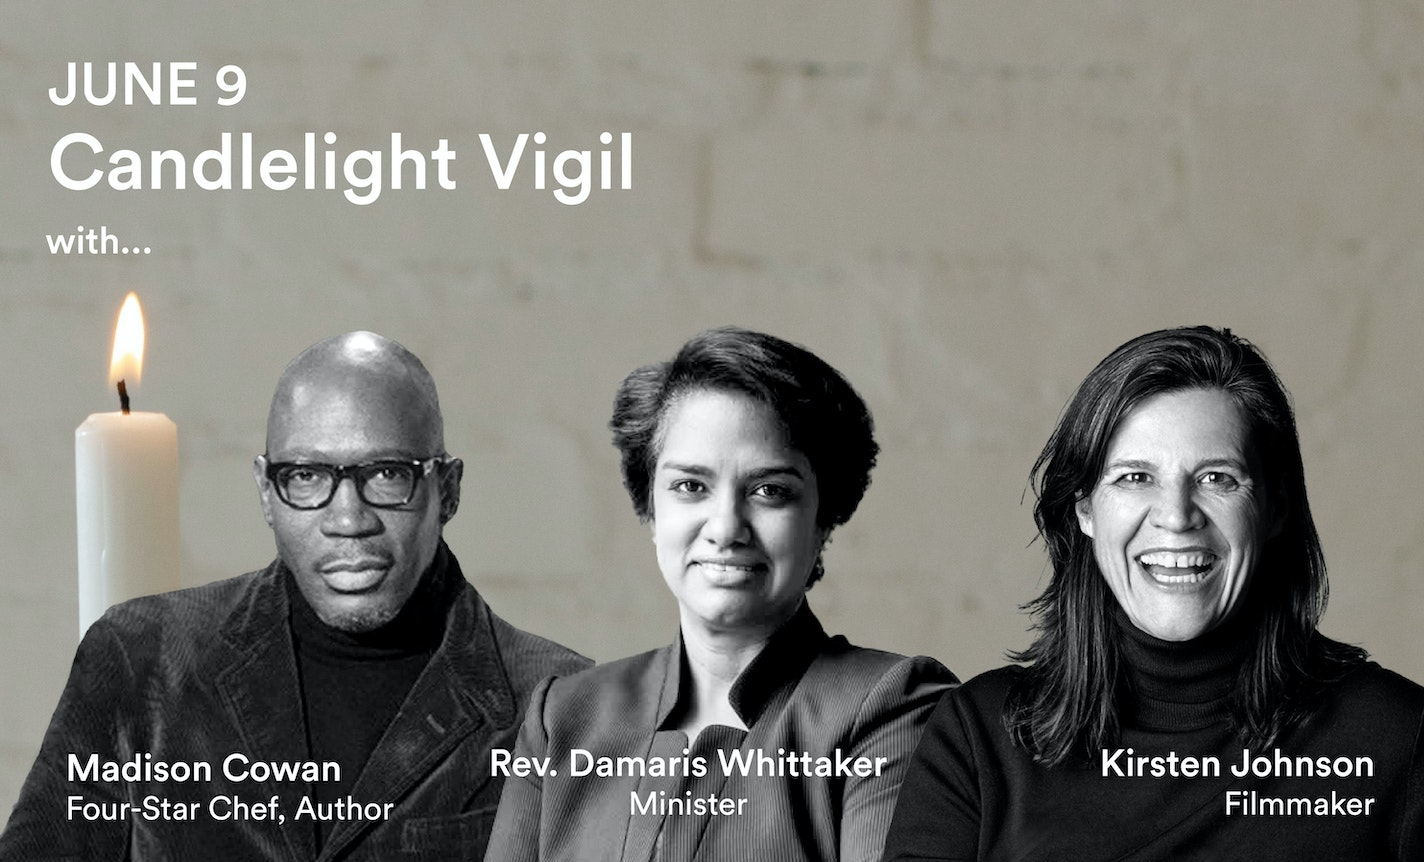 Reimagine Candlelight Vigil with Chef Madison Cowan & Guests